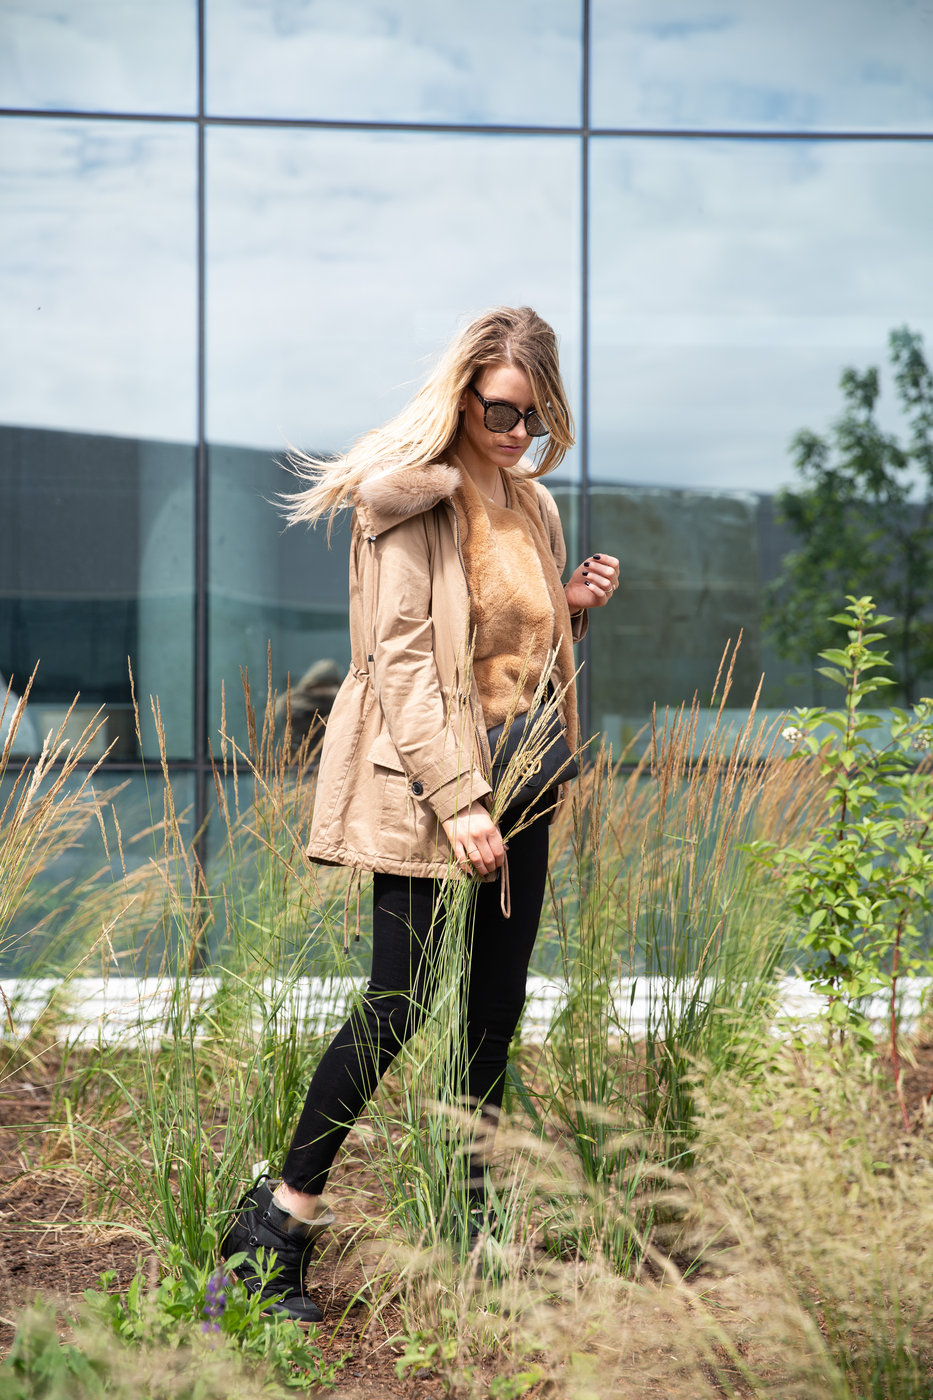 1 person, fashion blogger, anorak with fur collar